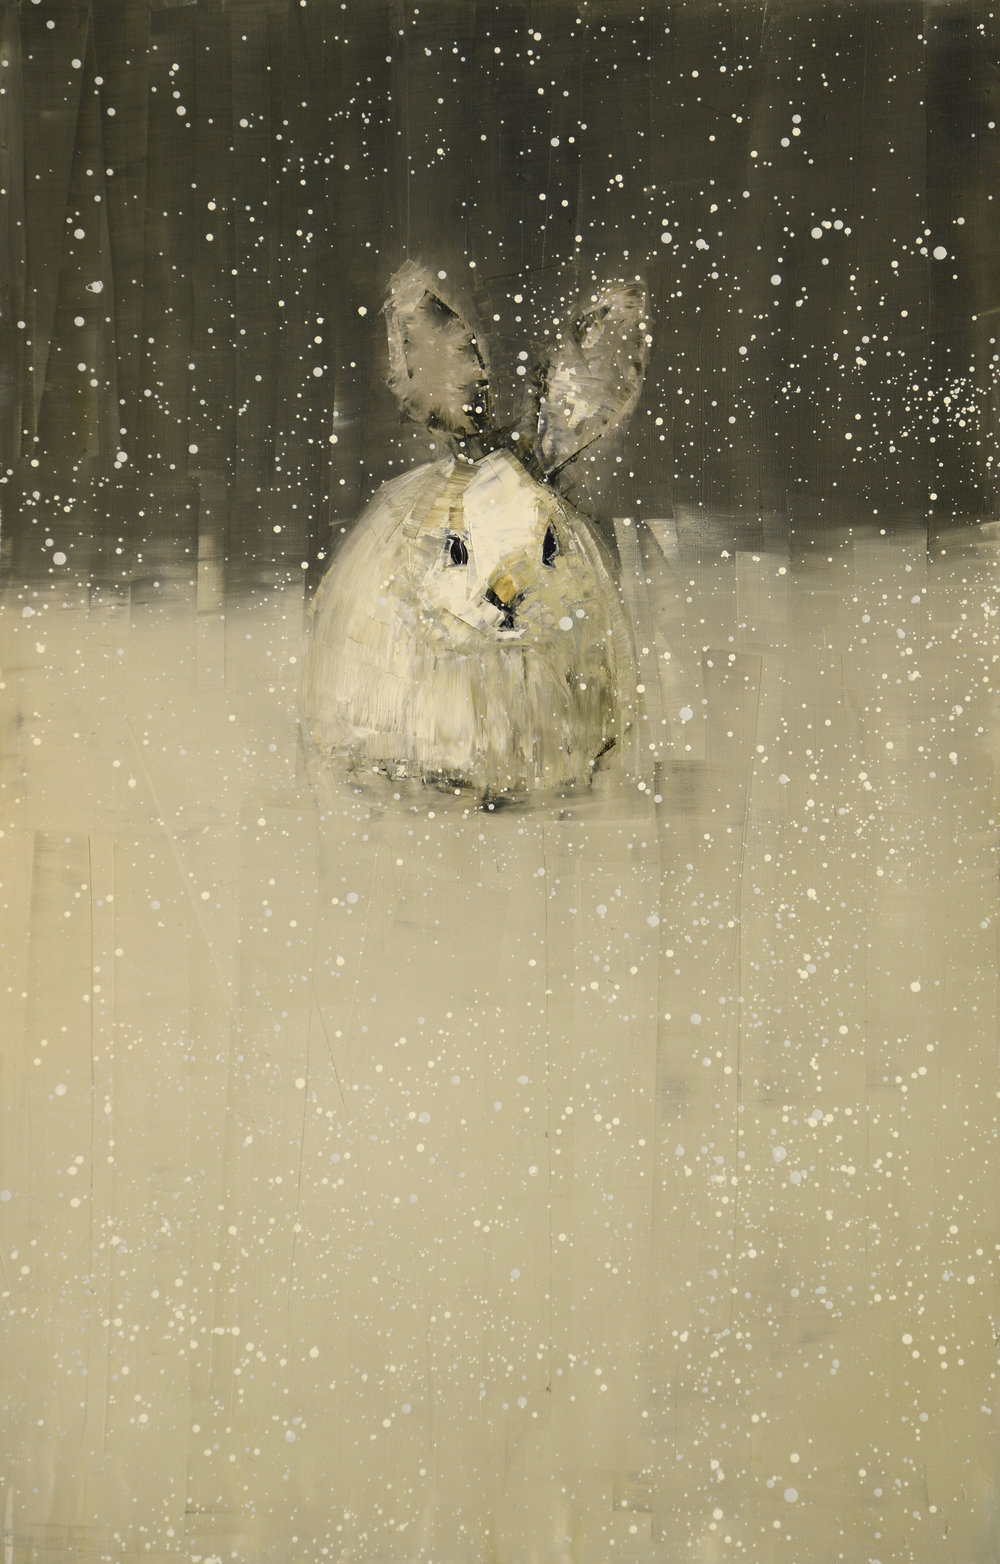 Snowshoe+Hare+(January)_46x30.jpg